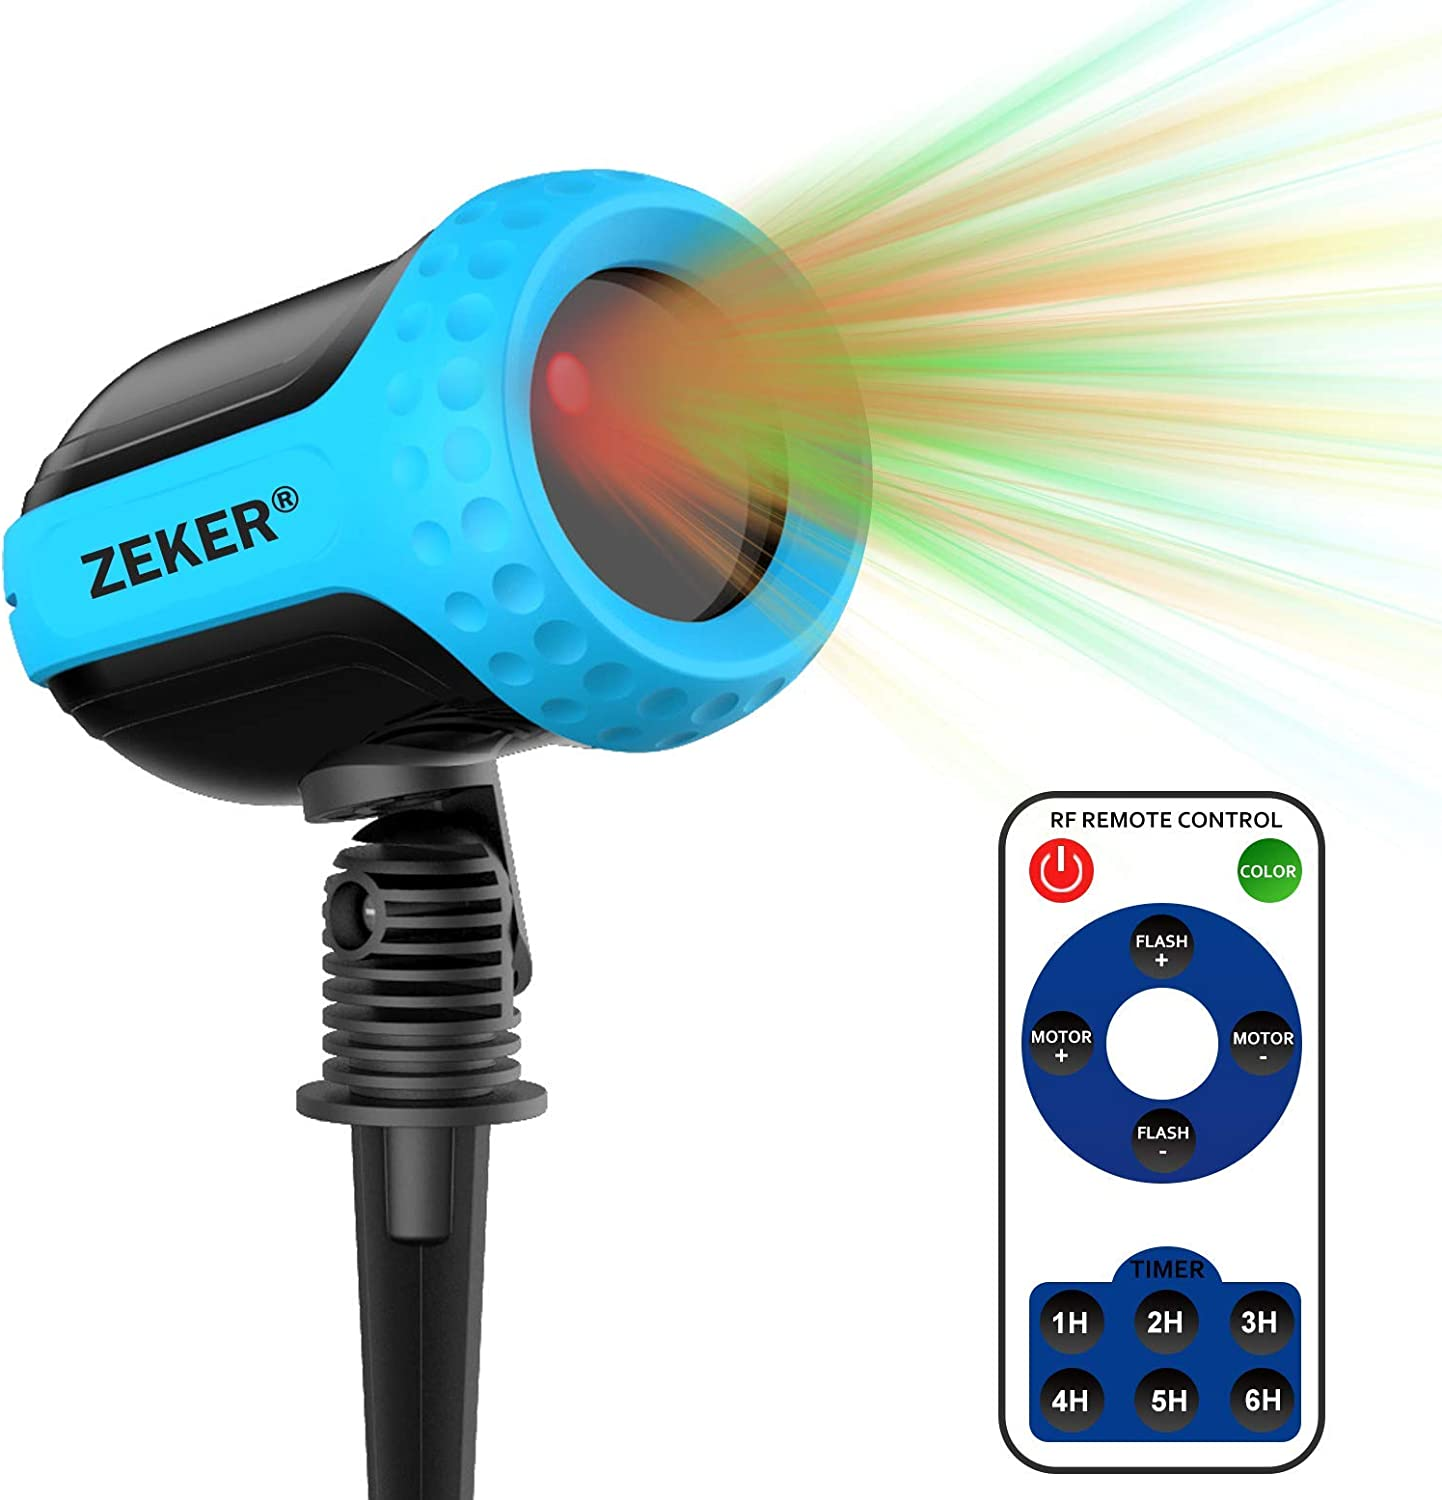 ZEKER Laser Projector Lights